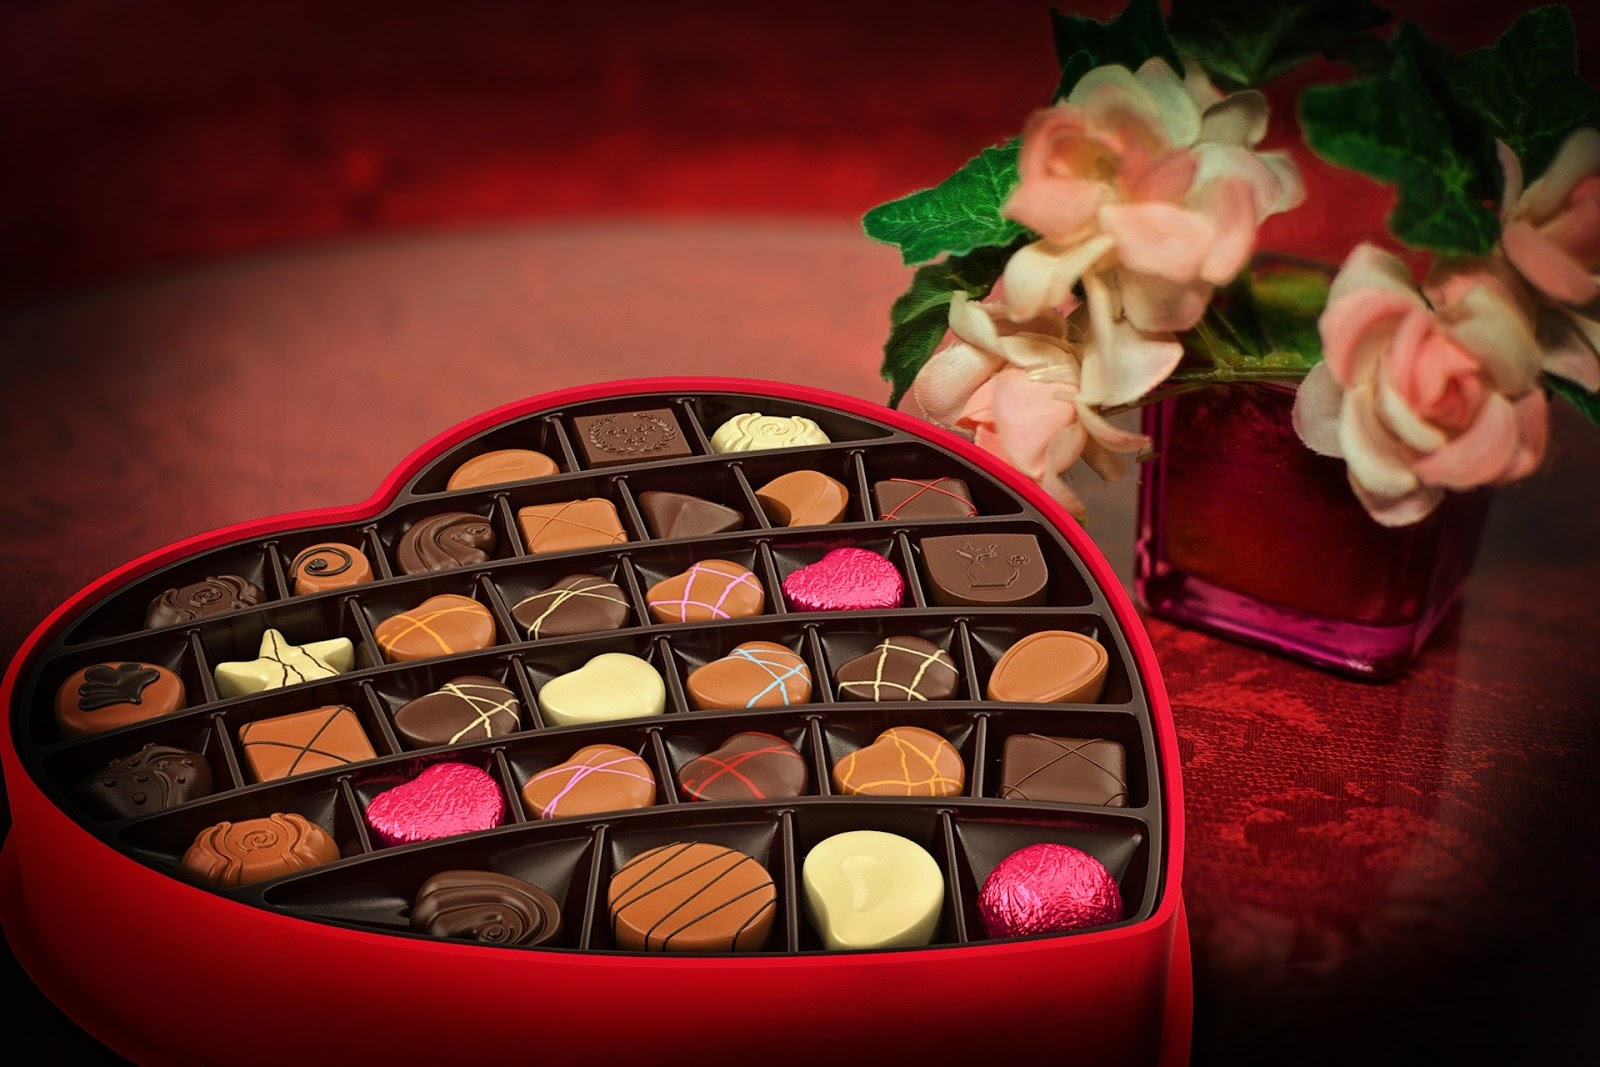 Valentine's Day Chocolates Candy Heart Love image